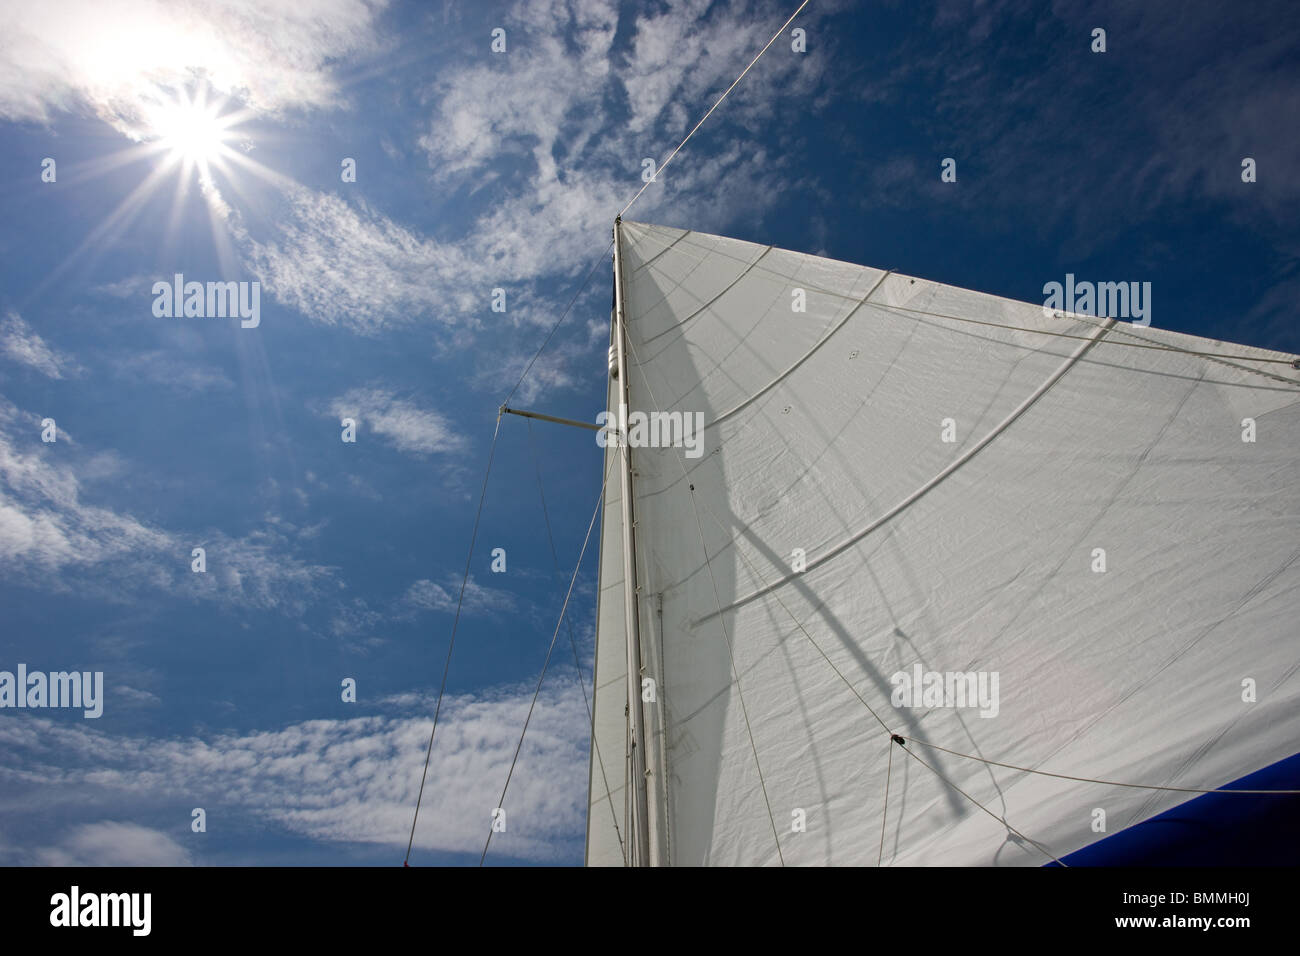 Sun shining down on the sails of a yacht - Stock Image